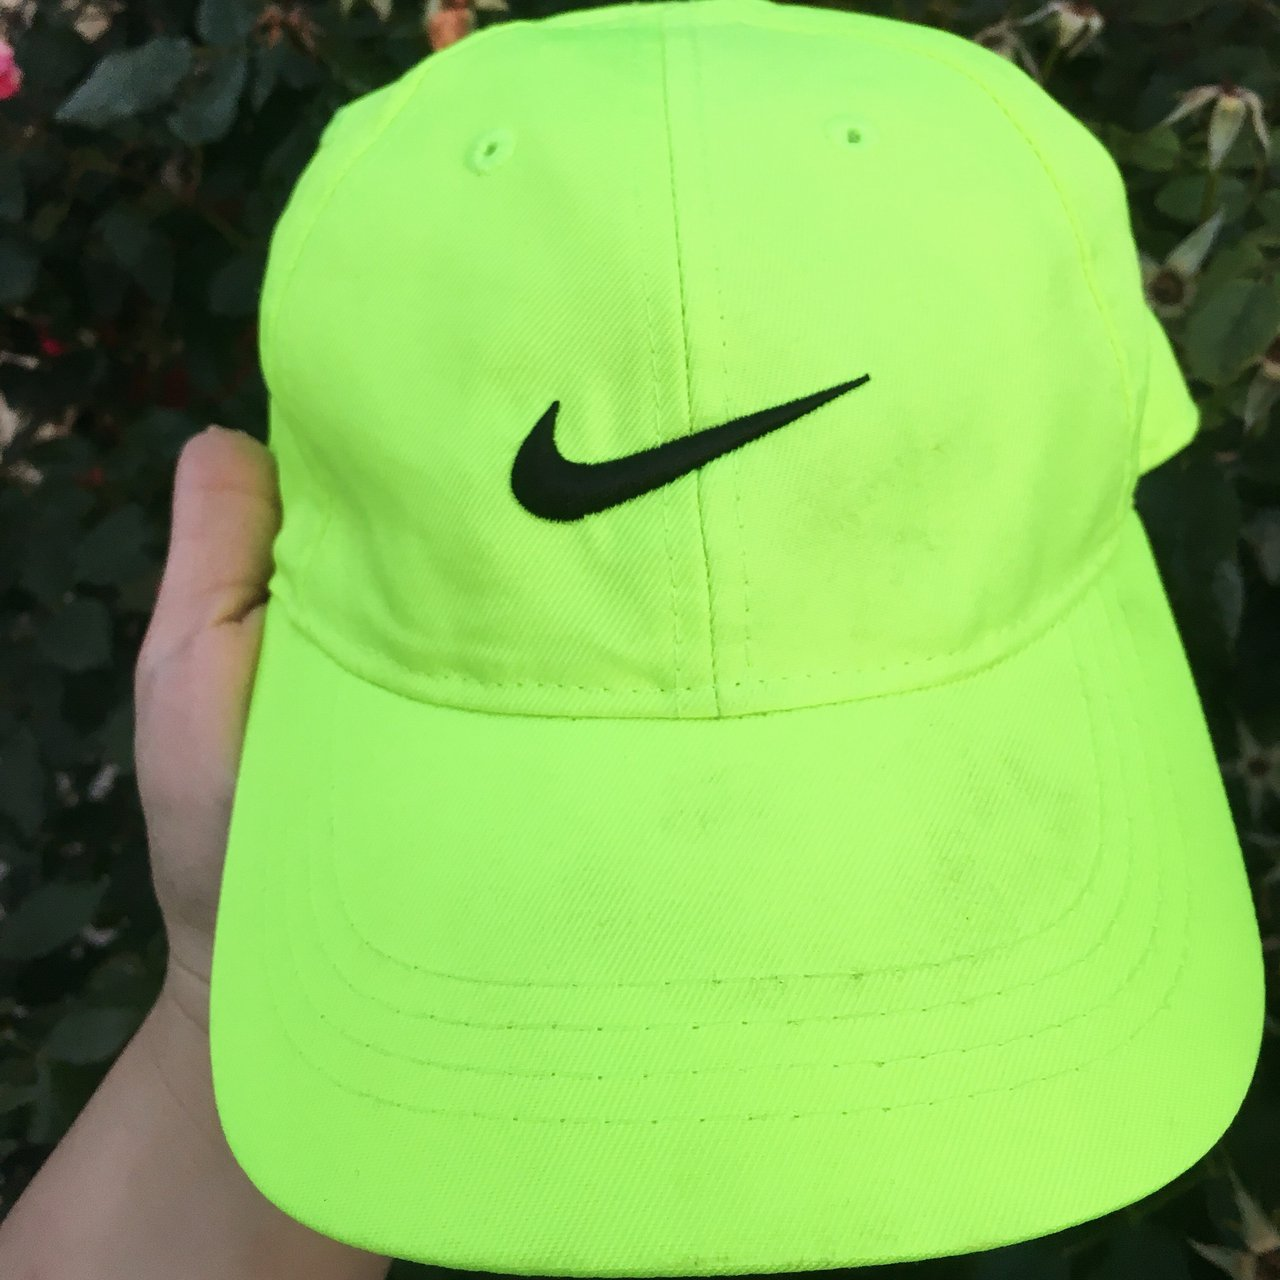 11207f60a43 Lime green Nike dad hat! ✨ Such a beautiful bright color a - Depop